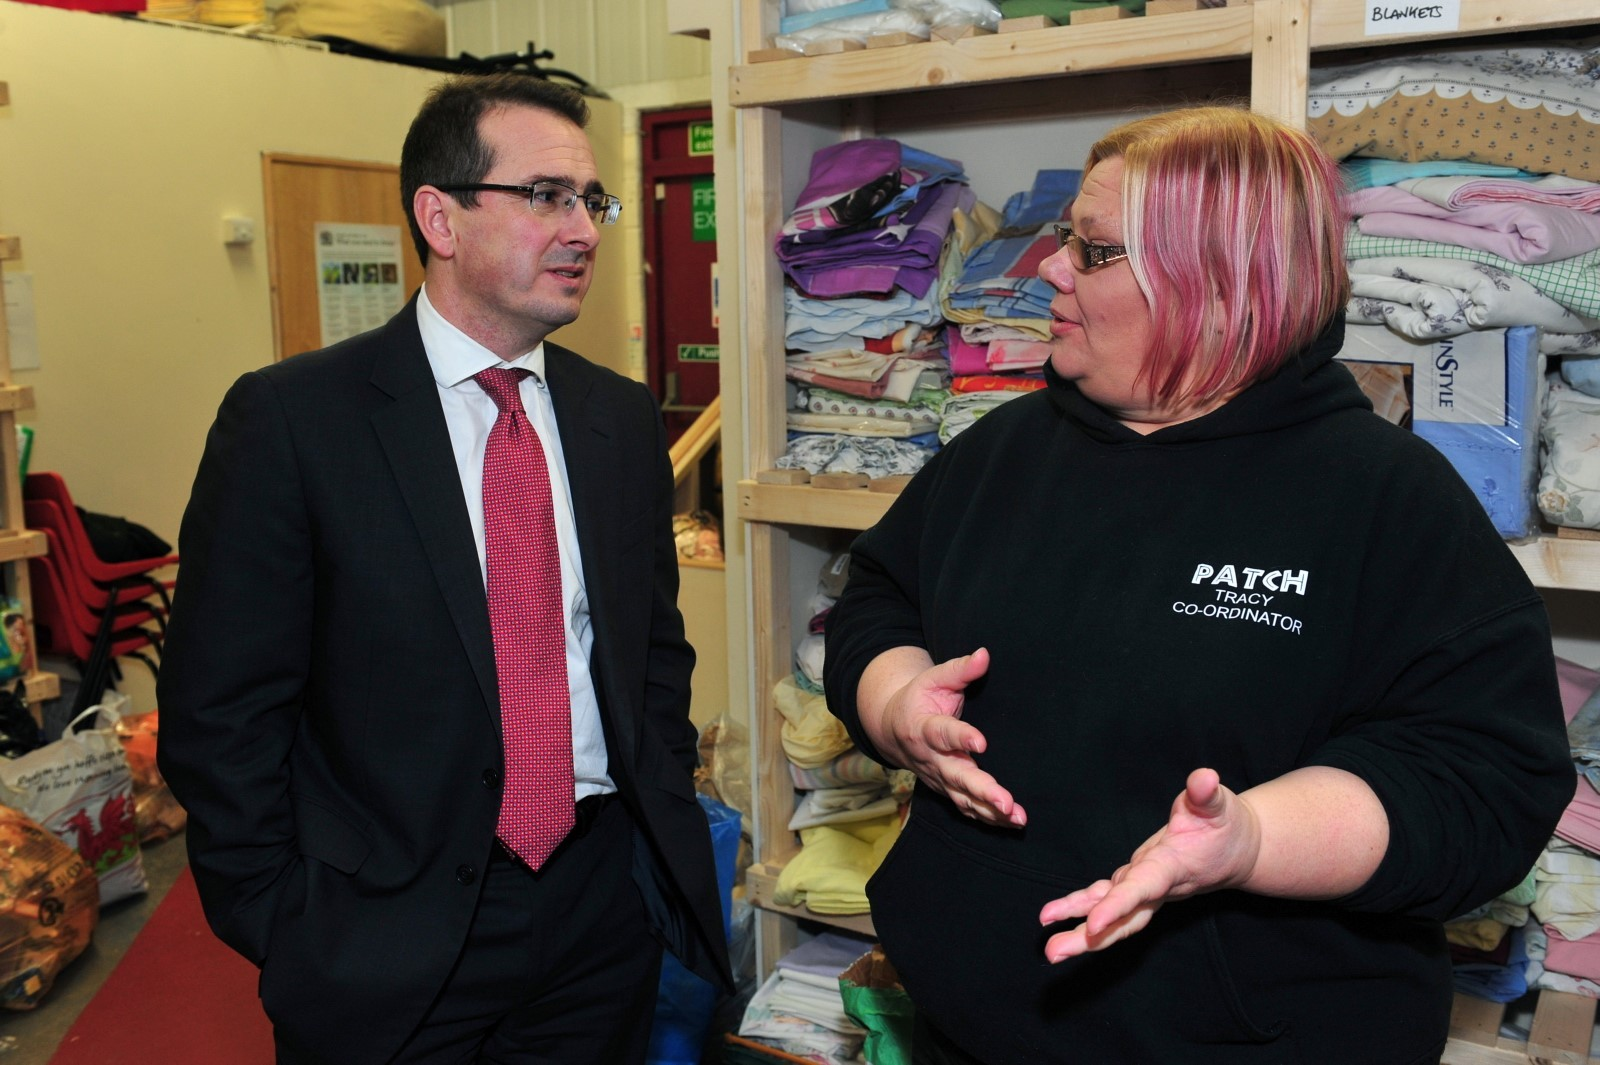 Shadow Welsh secretary 'astounded' by poverty in Wales